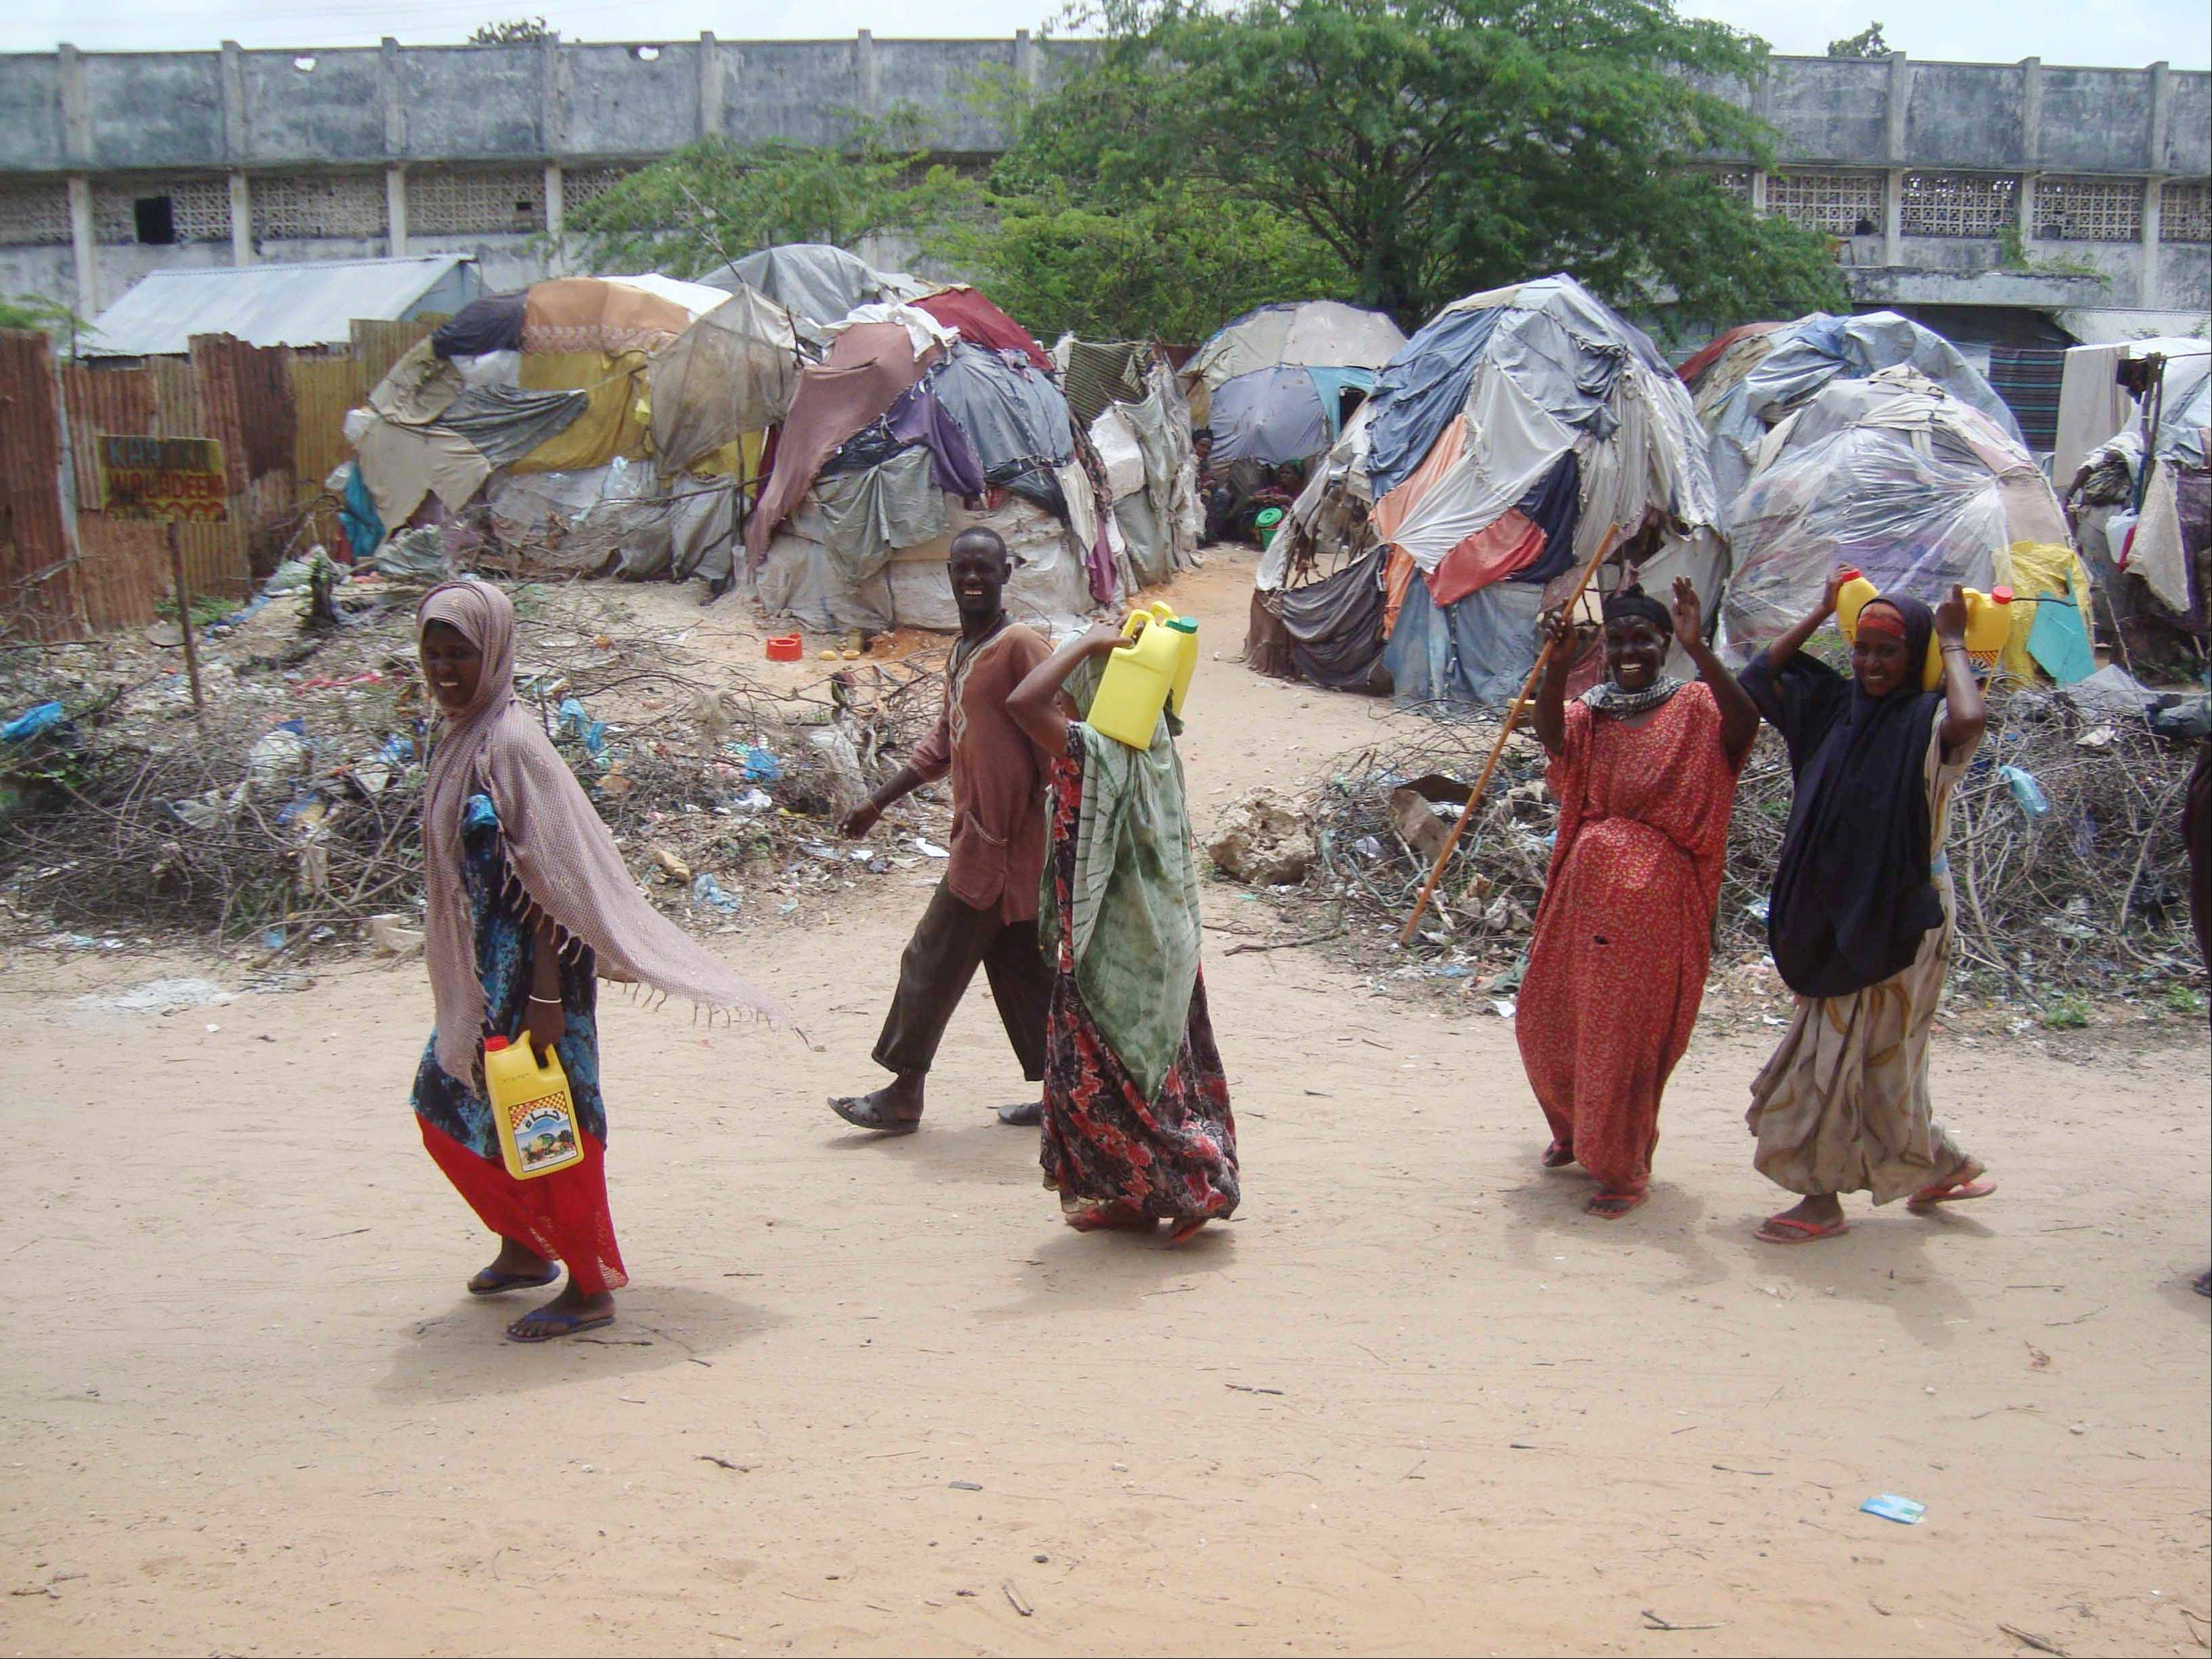 Southern Somali people carrying rations from a food distribution centre toward a refugee camp in Mogadishu, Somalia, Thursday, Aug. 11, 2011. The drought and famine in Somalia have killed more than 29,000 children under the age of 5, according to U.S. estimates, the first time such a precise death toll has been released, and the U.N. says 640,000 Somali children are acutely malnourished, a statistic that suggests the death toll of small children will rise.